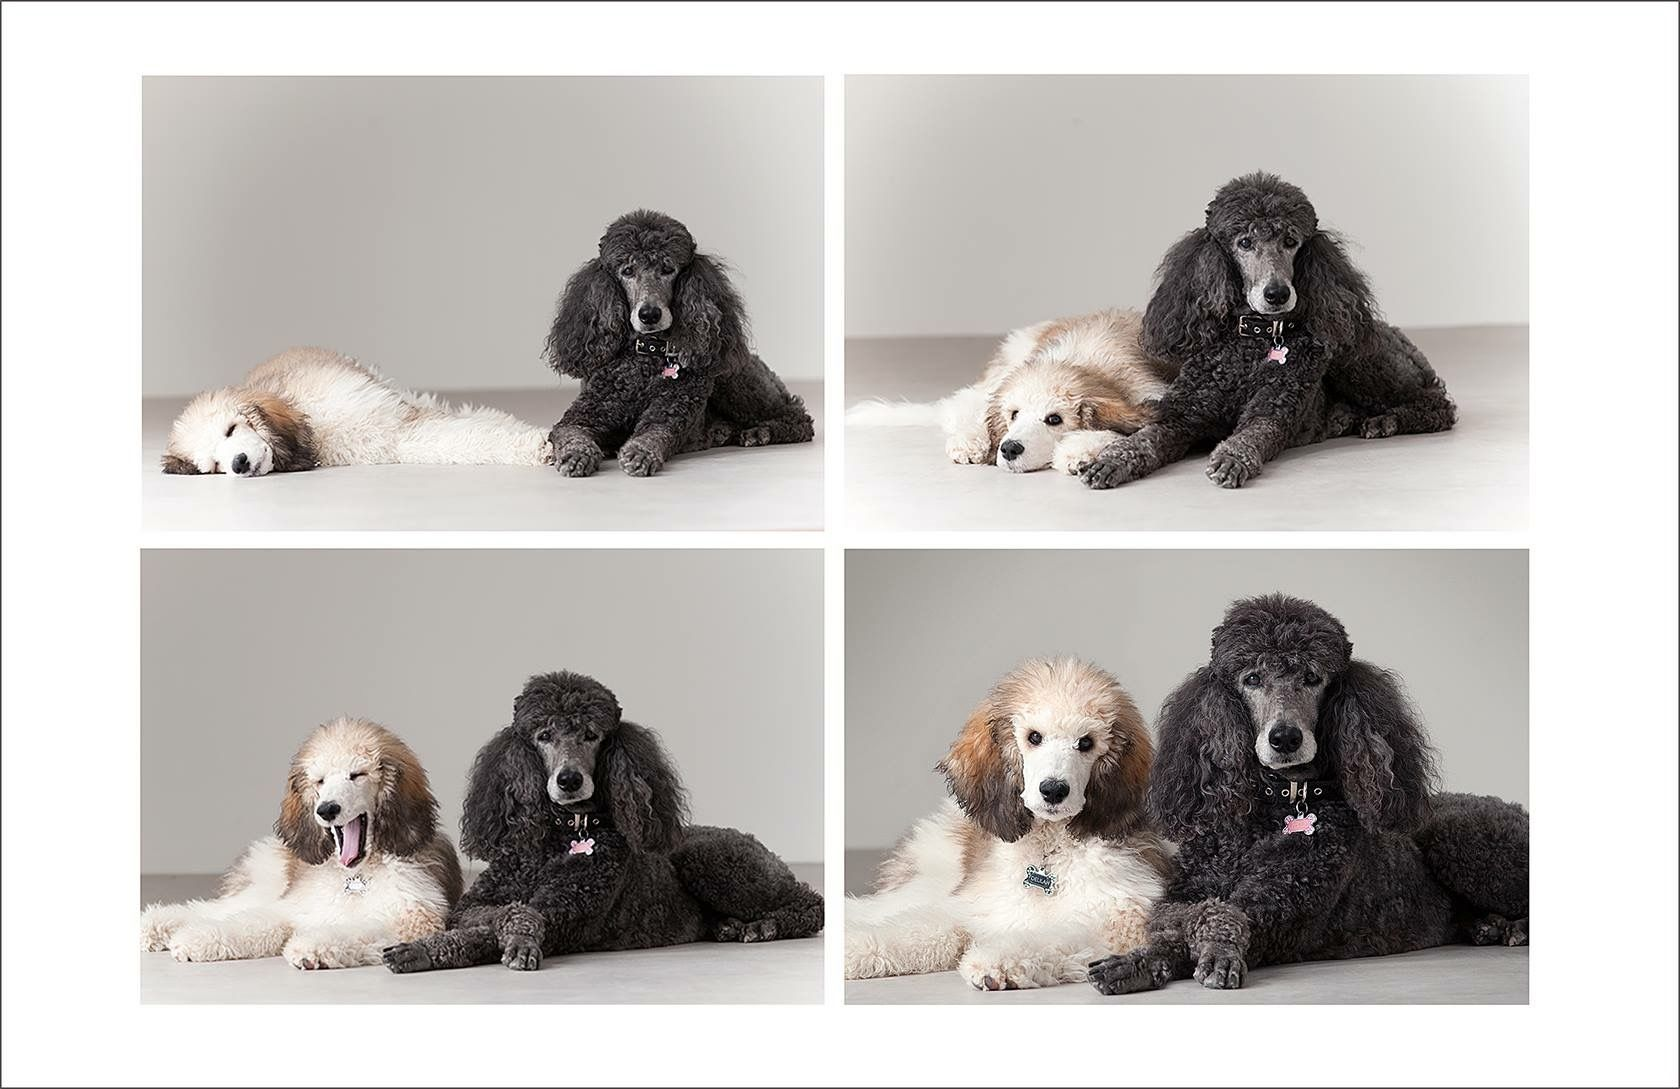 Cynthia Moore Photographer Isleof Standard Poodle Breeder London